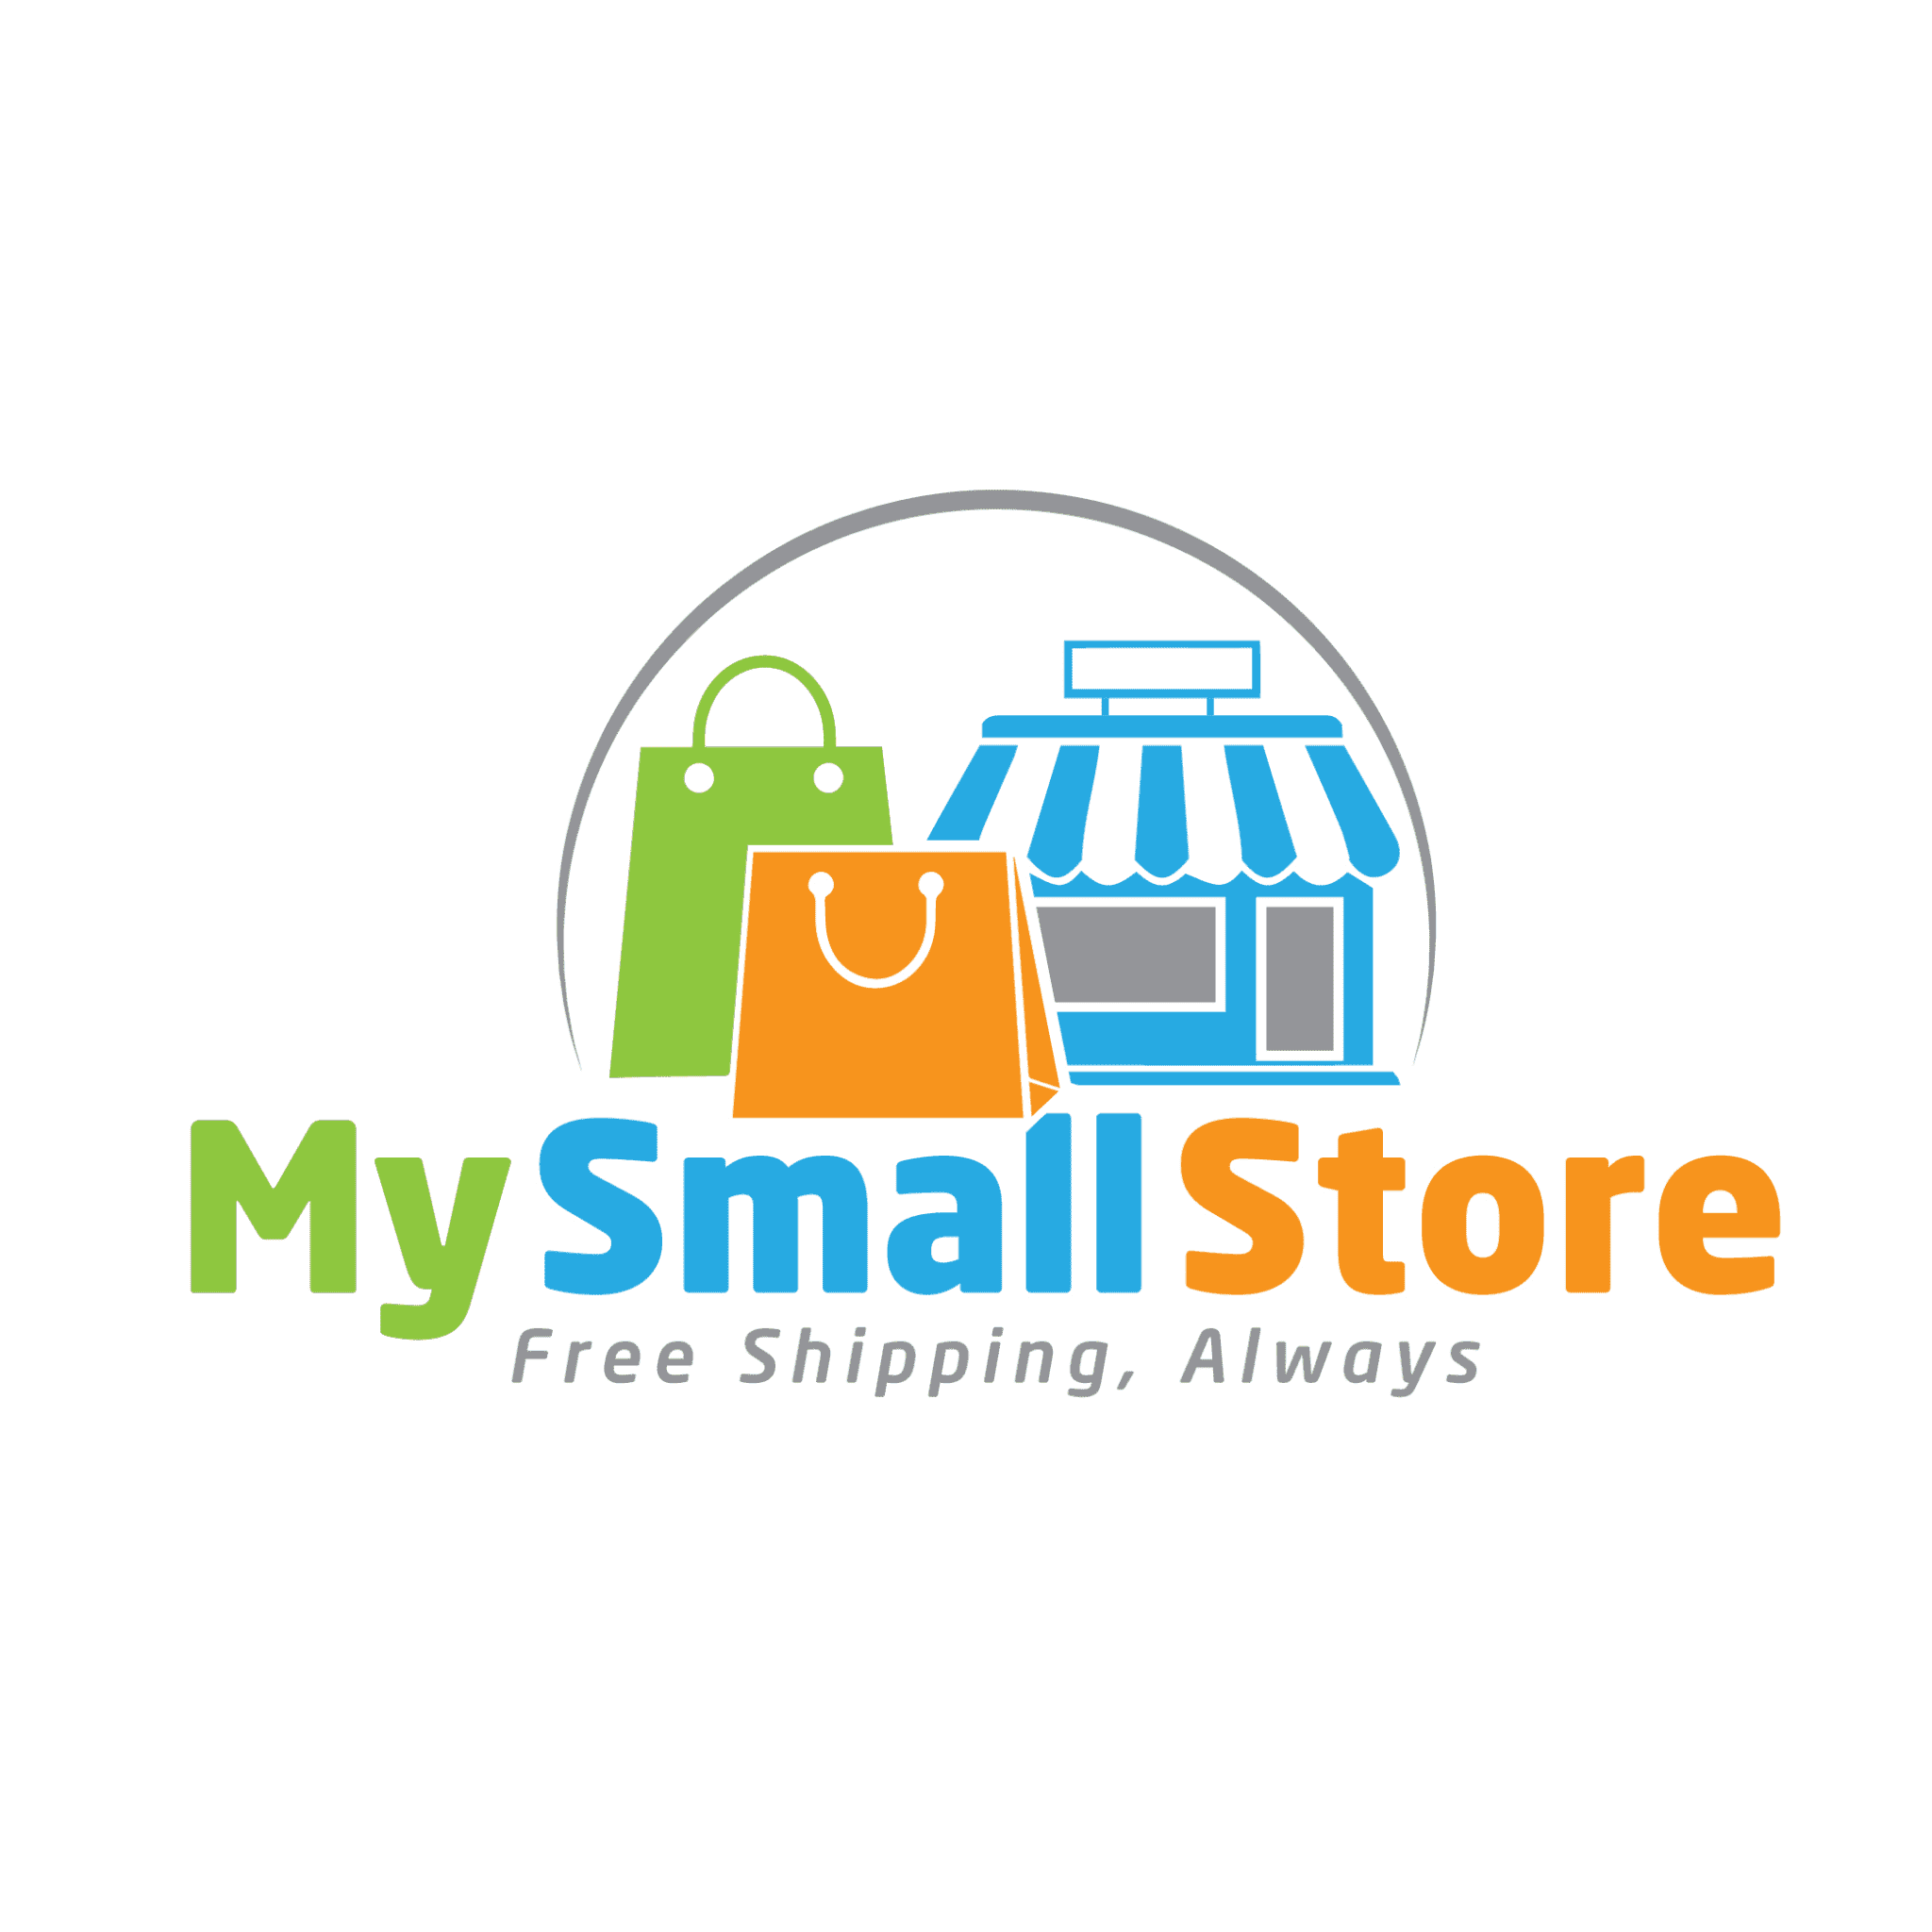 My Small Store